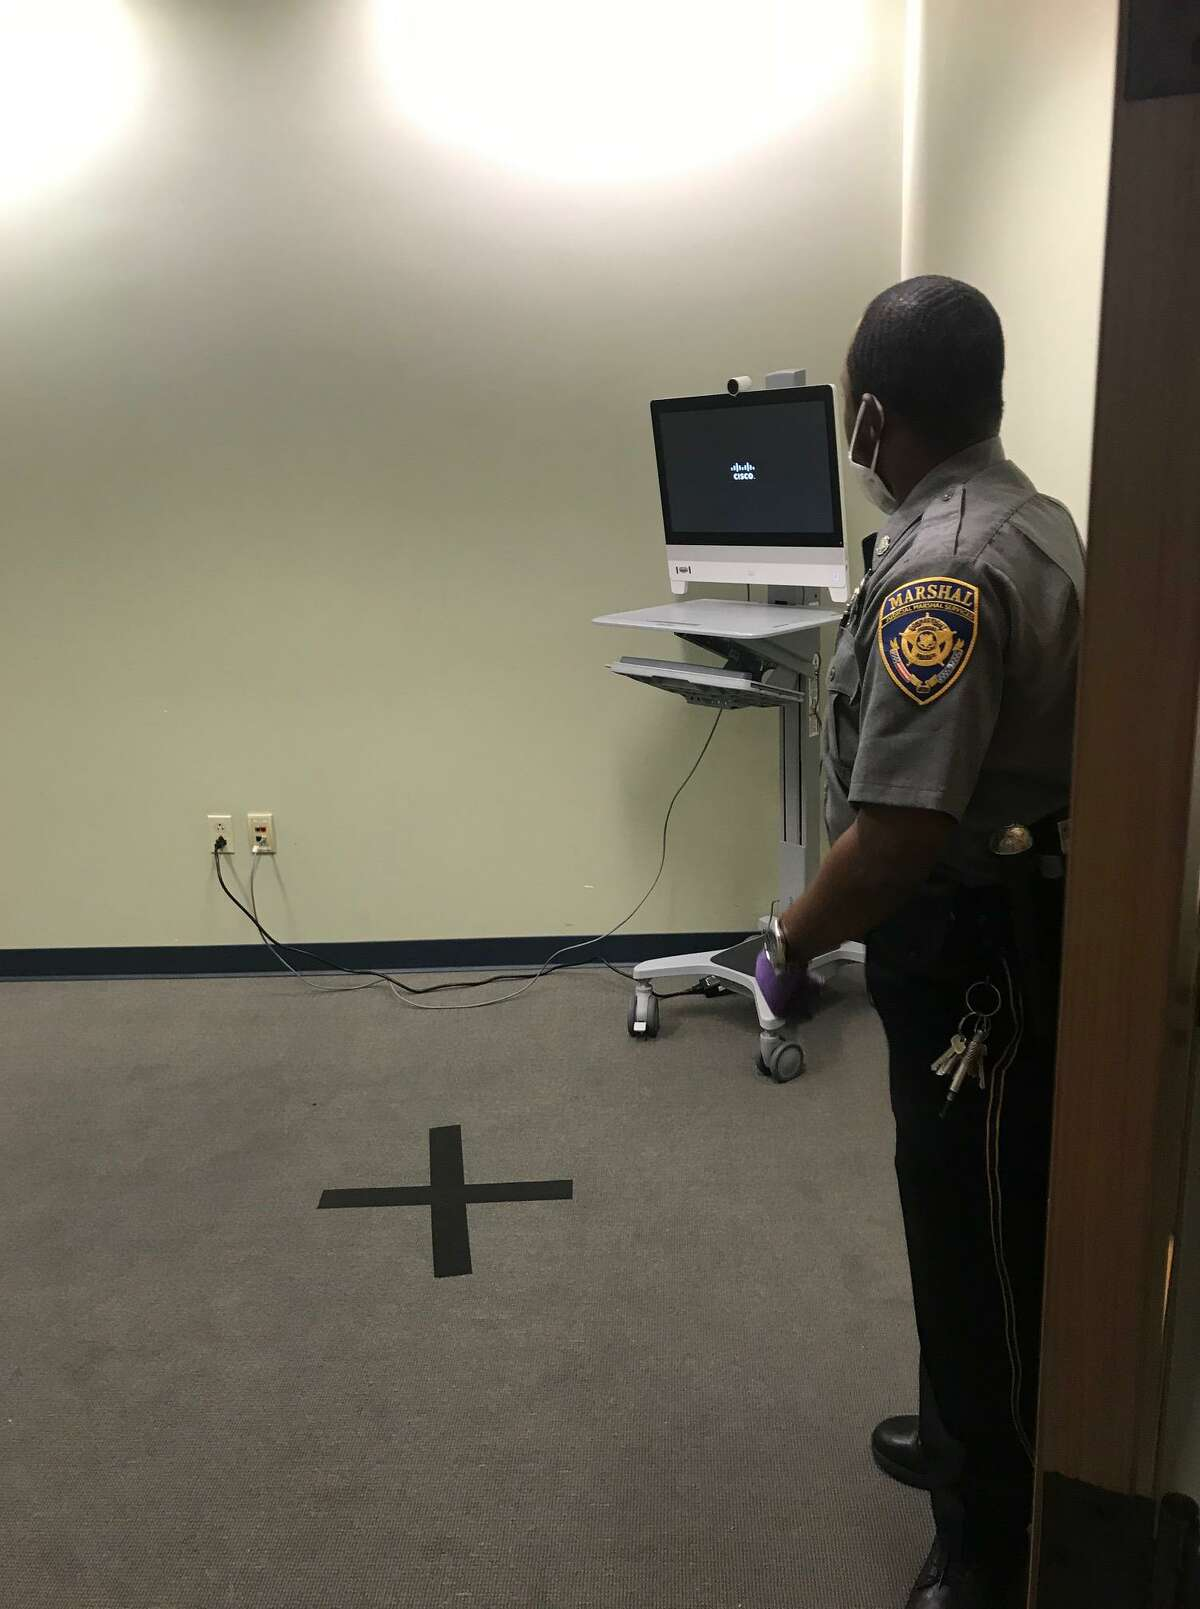 Judicial Marshal Jason Walker standing next to a monitor where defendants are arraigned via video camera at the Stamford courthouse on Monday. The X on the floor marks where attorneys and defendants are supposed to stand while on video.